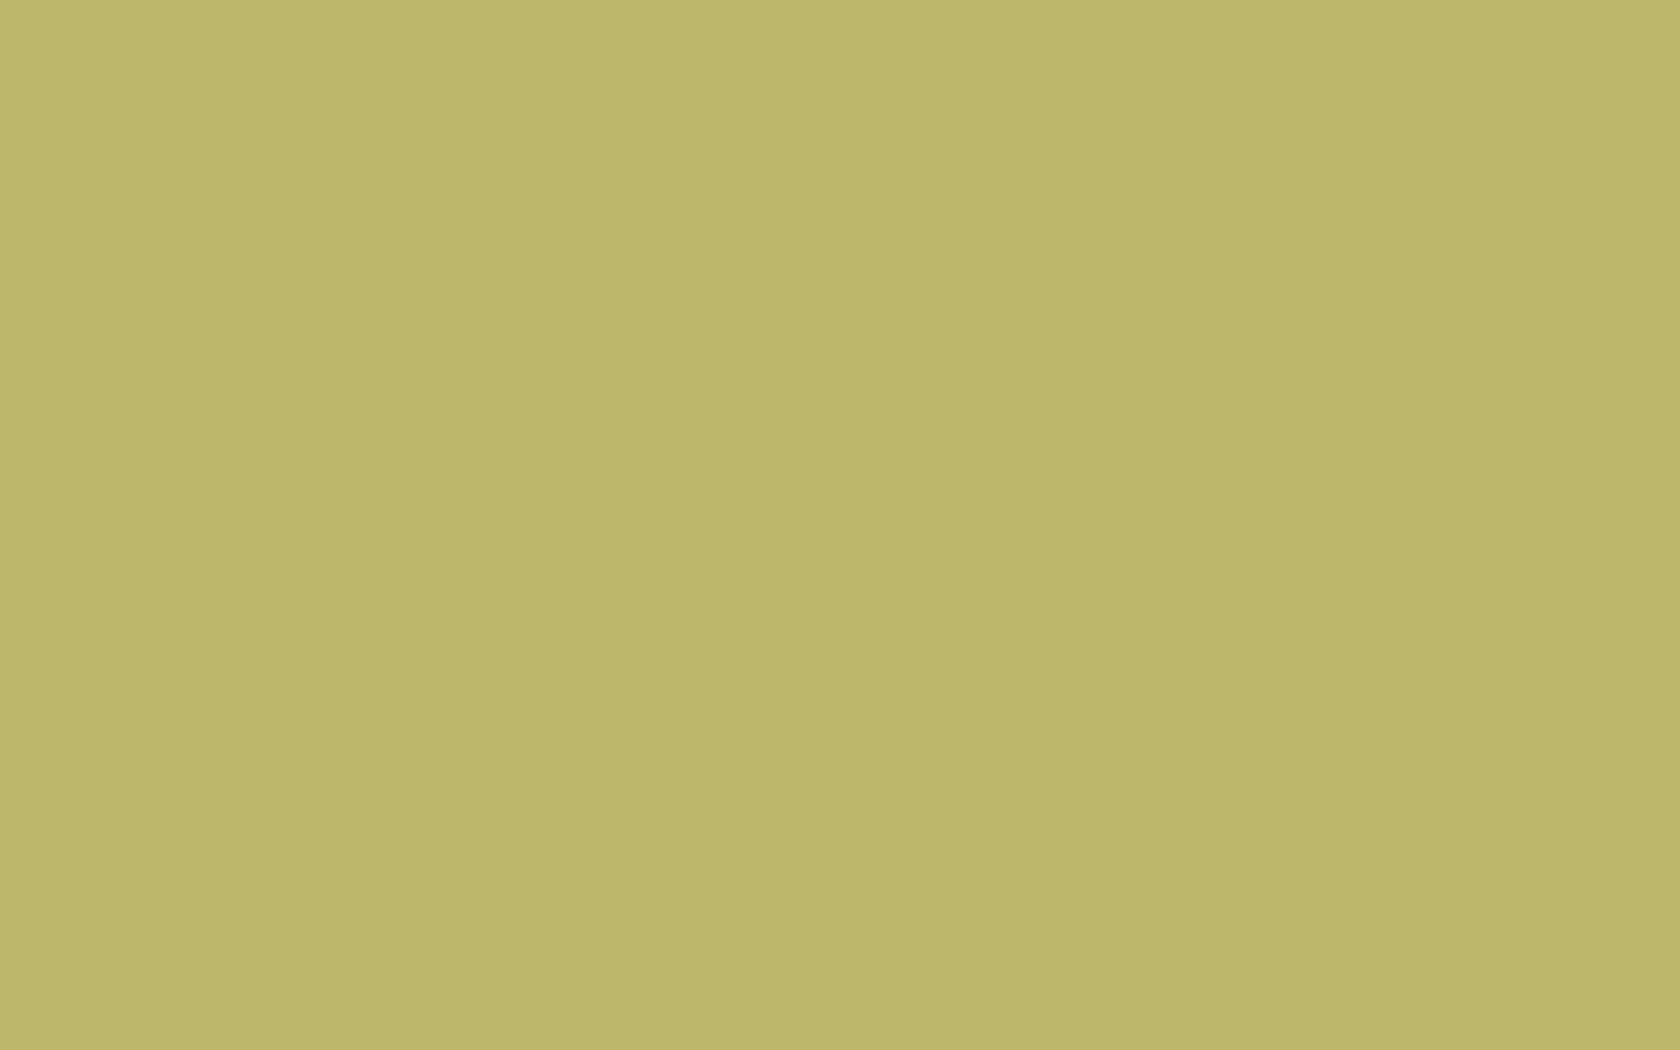 1680x1050 Dark Khaki Solid Color Background